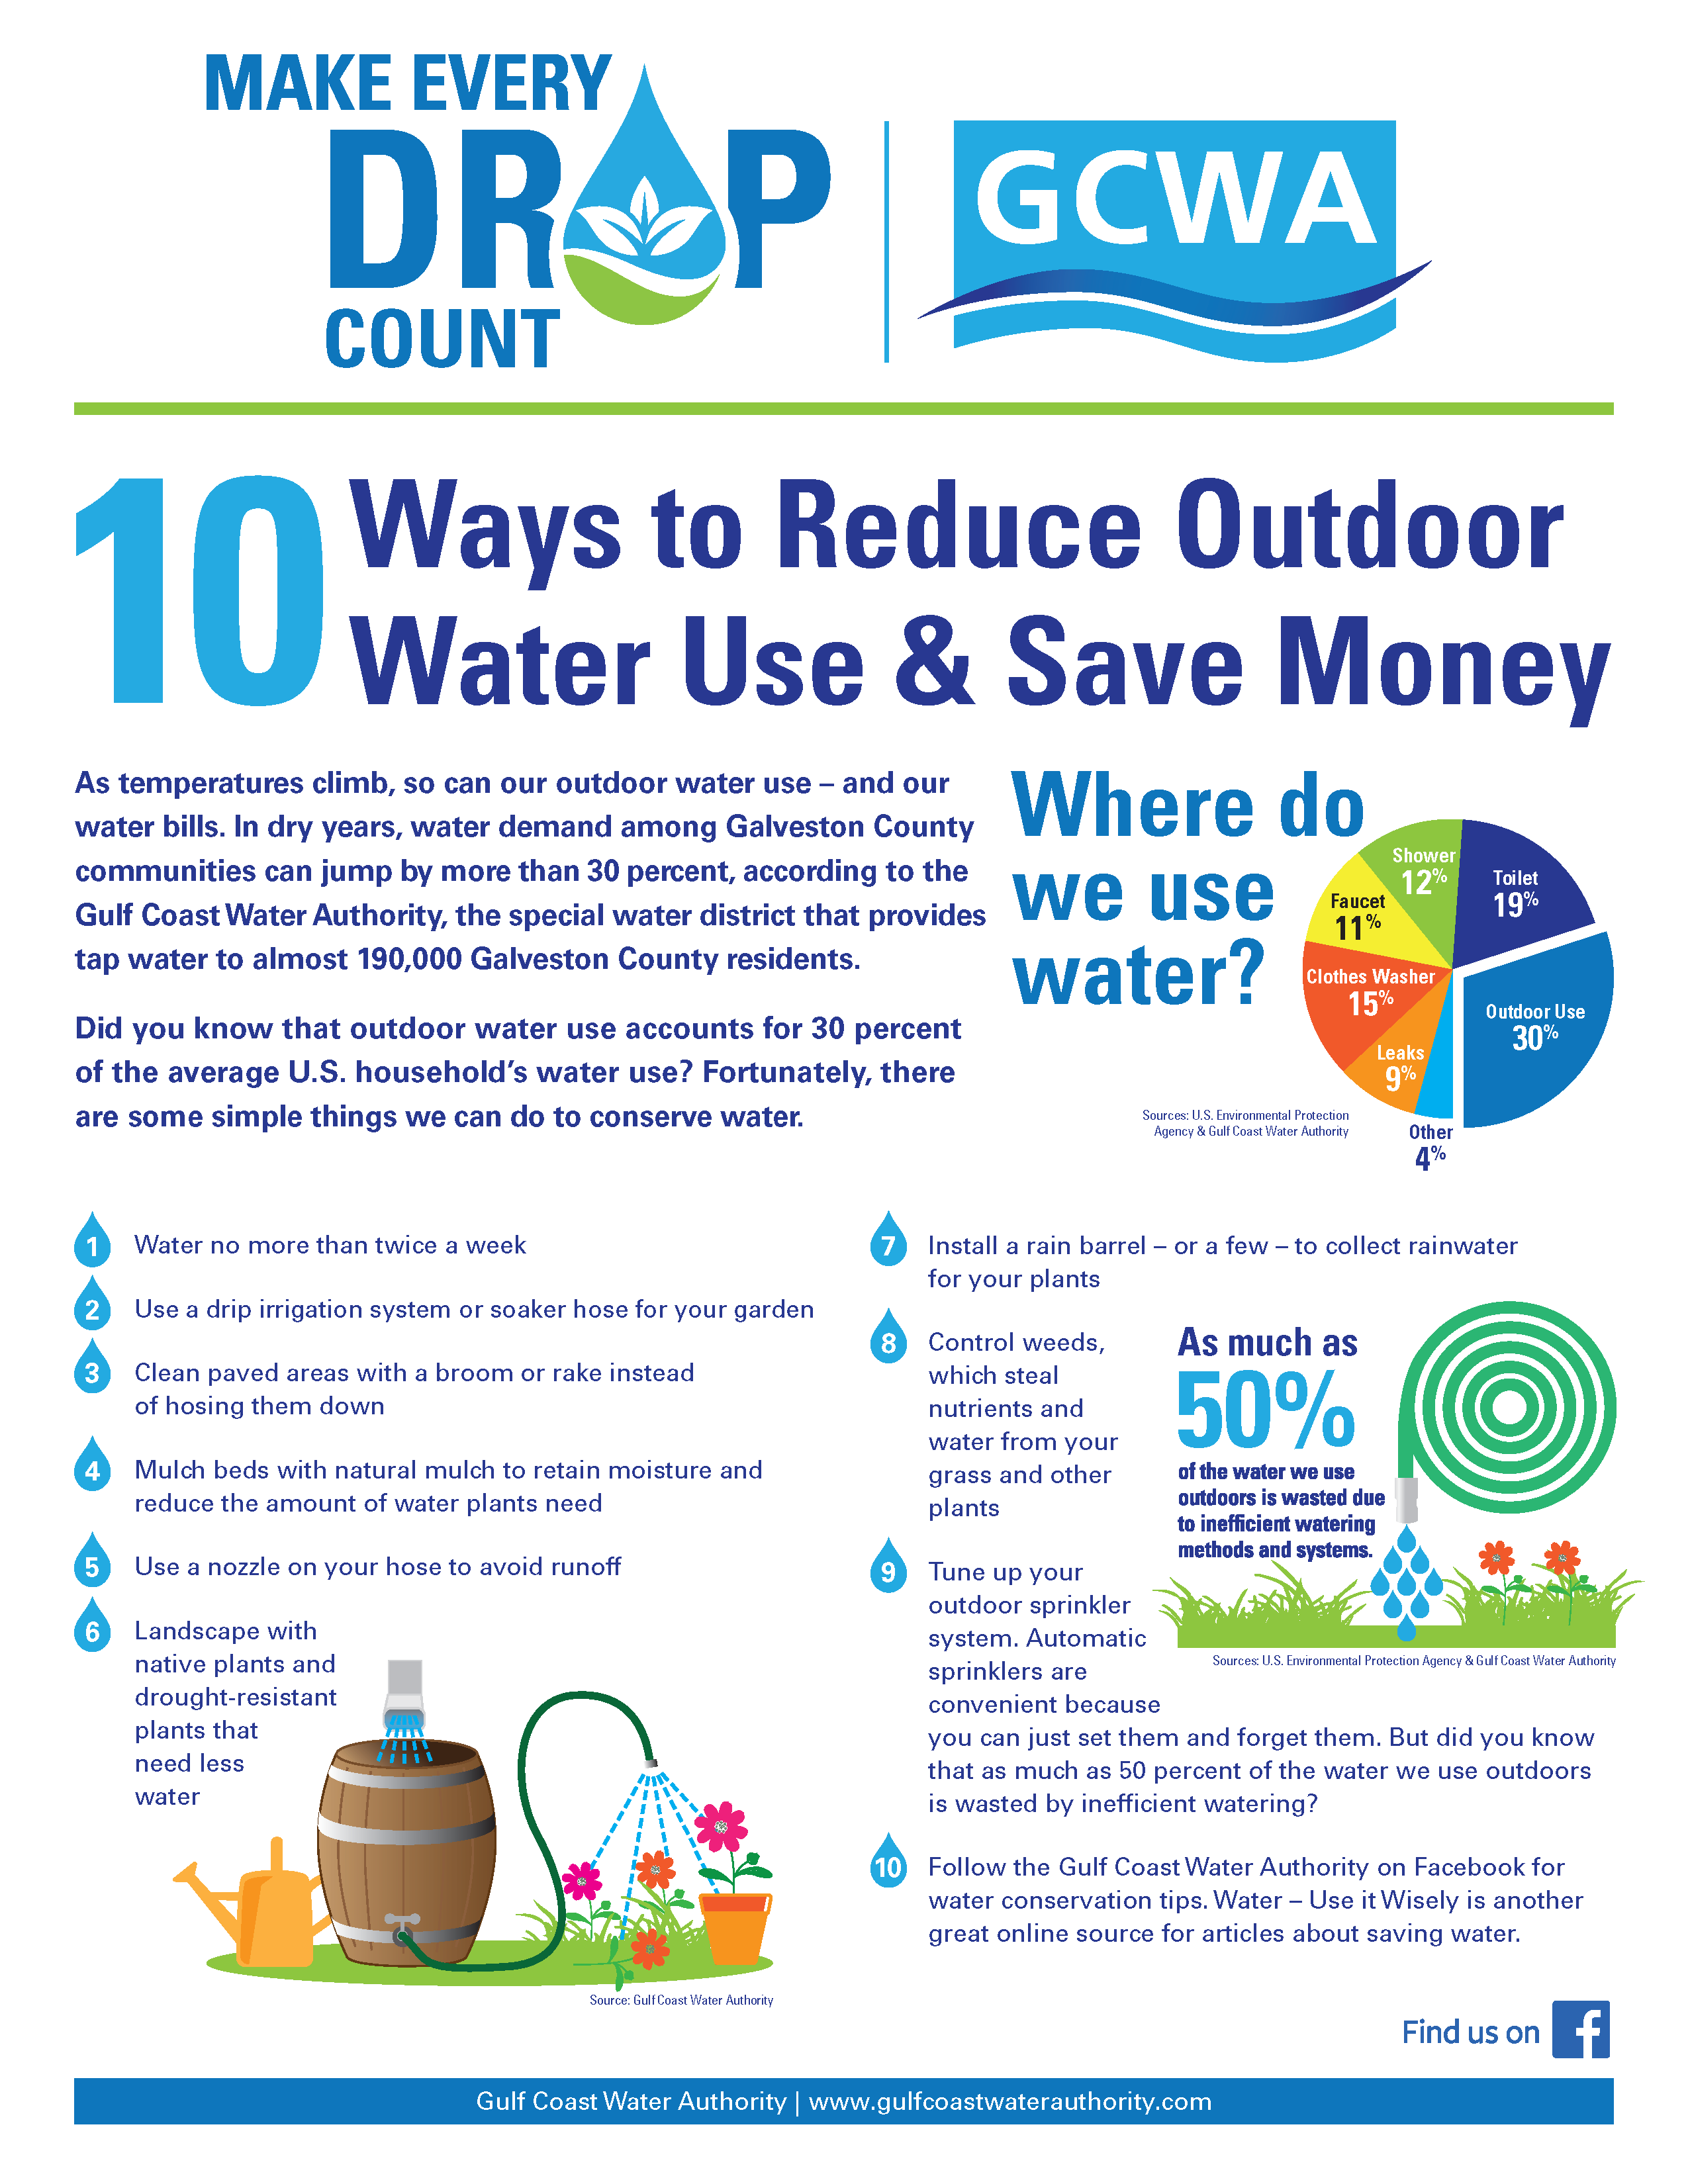 GCWA 10 Ways to Conserve Water